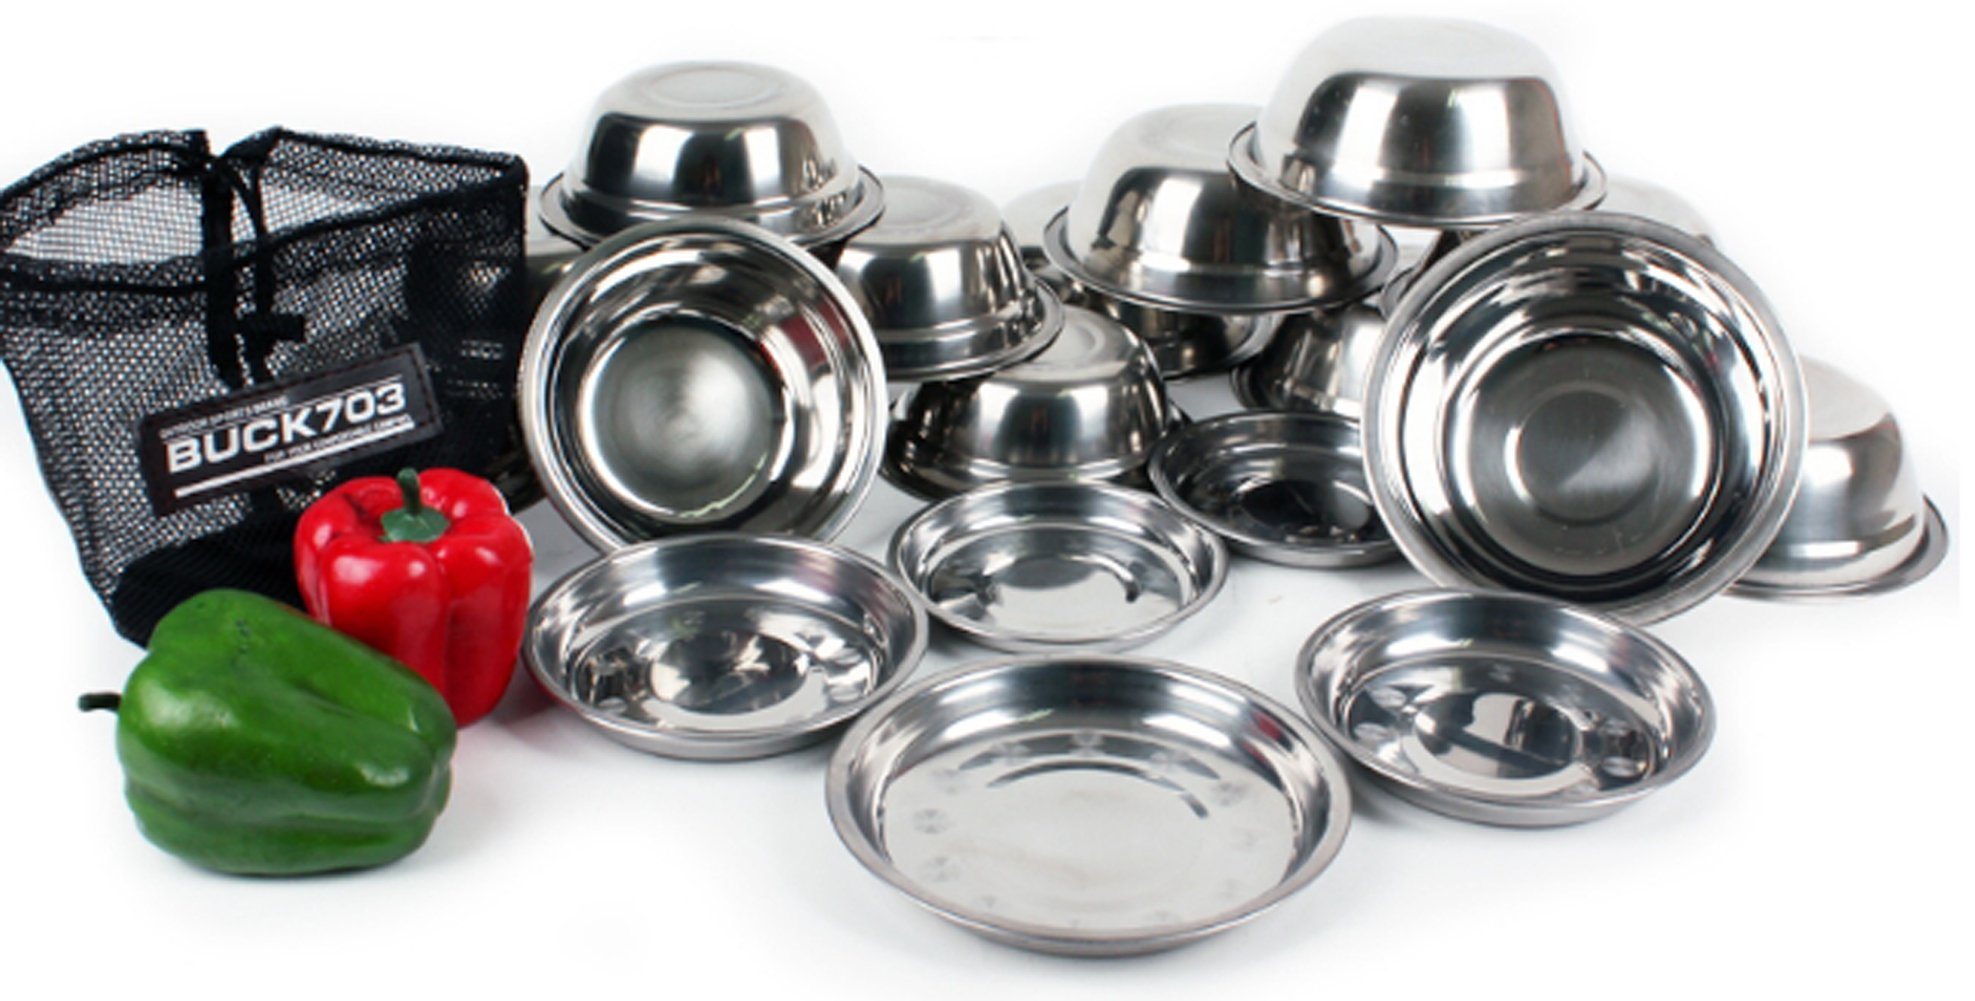 BUCK703 Stainless Steel Outdoor Camping Tableware 19P Bowl(S) 7EA Bowl(L)7 Plate Dishes 5EA